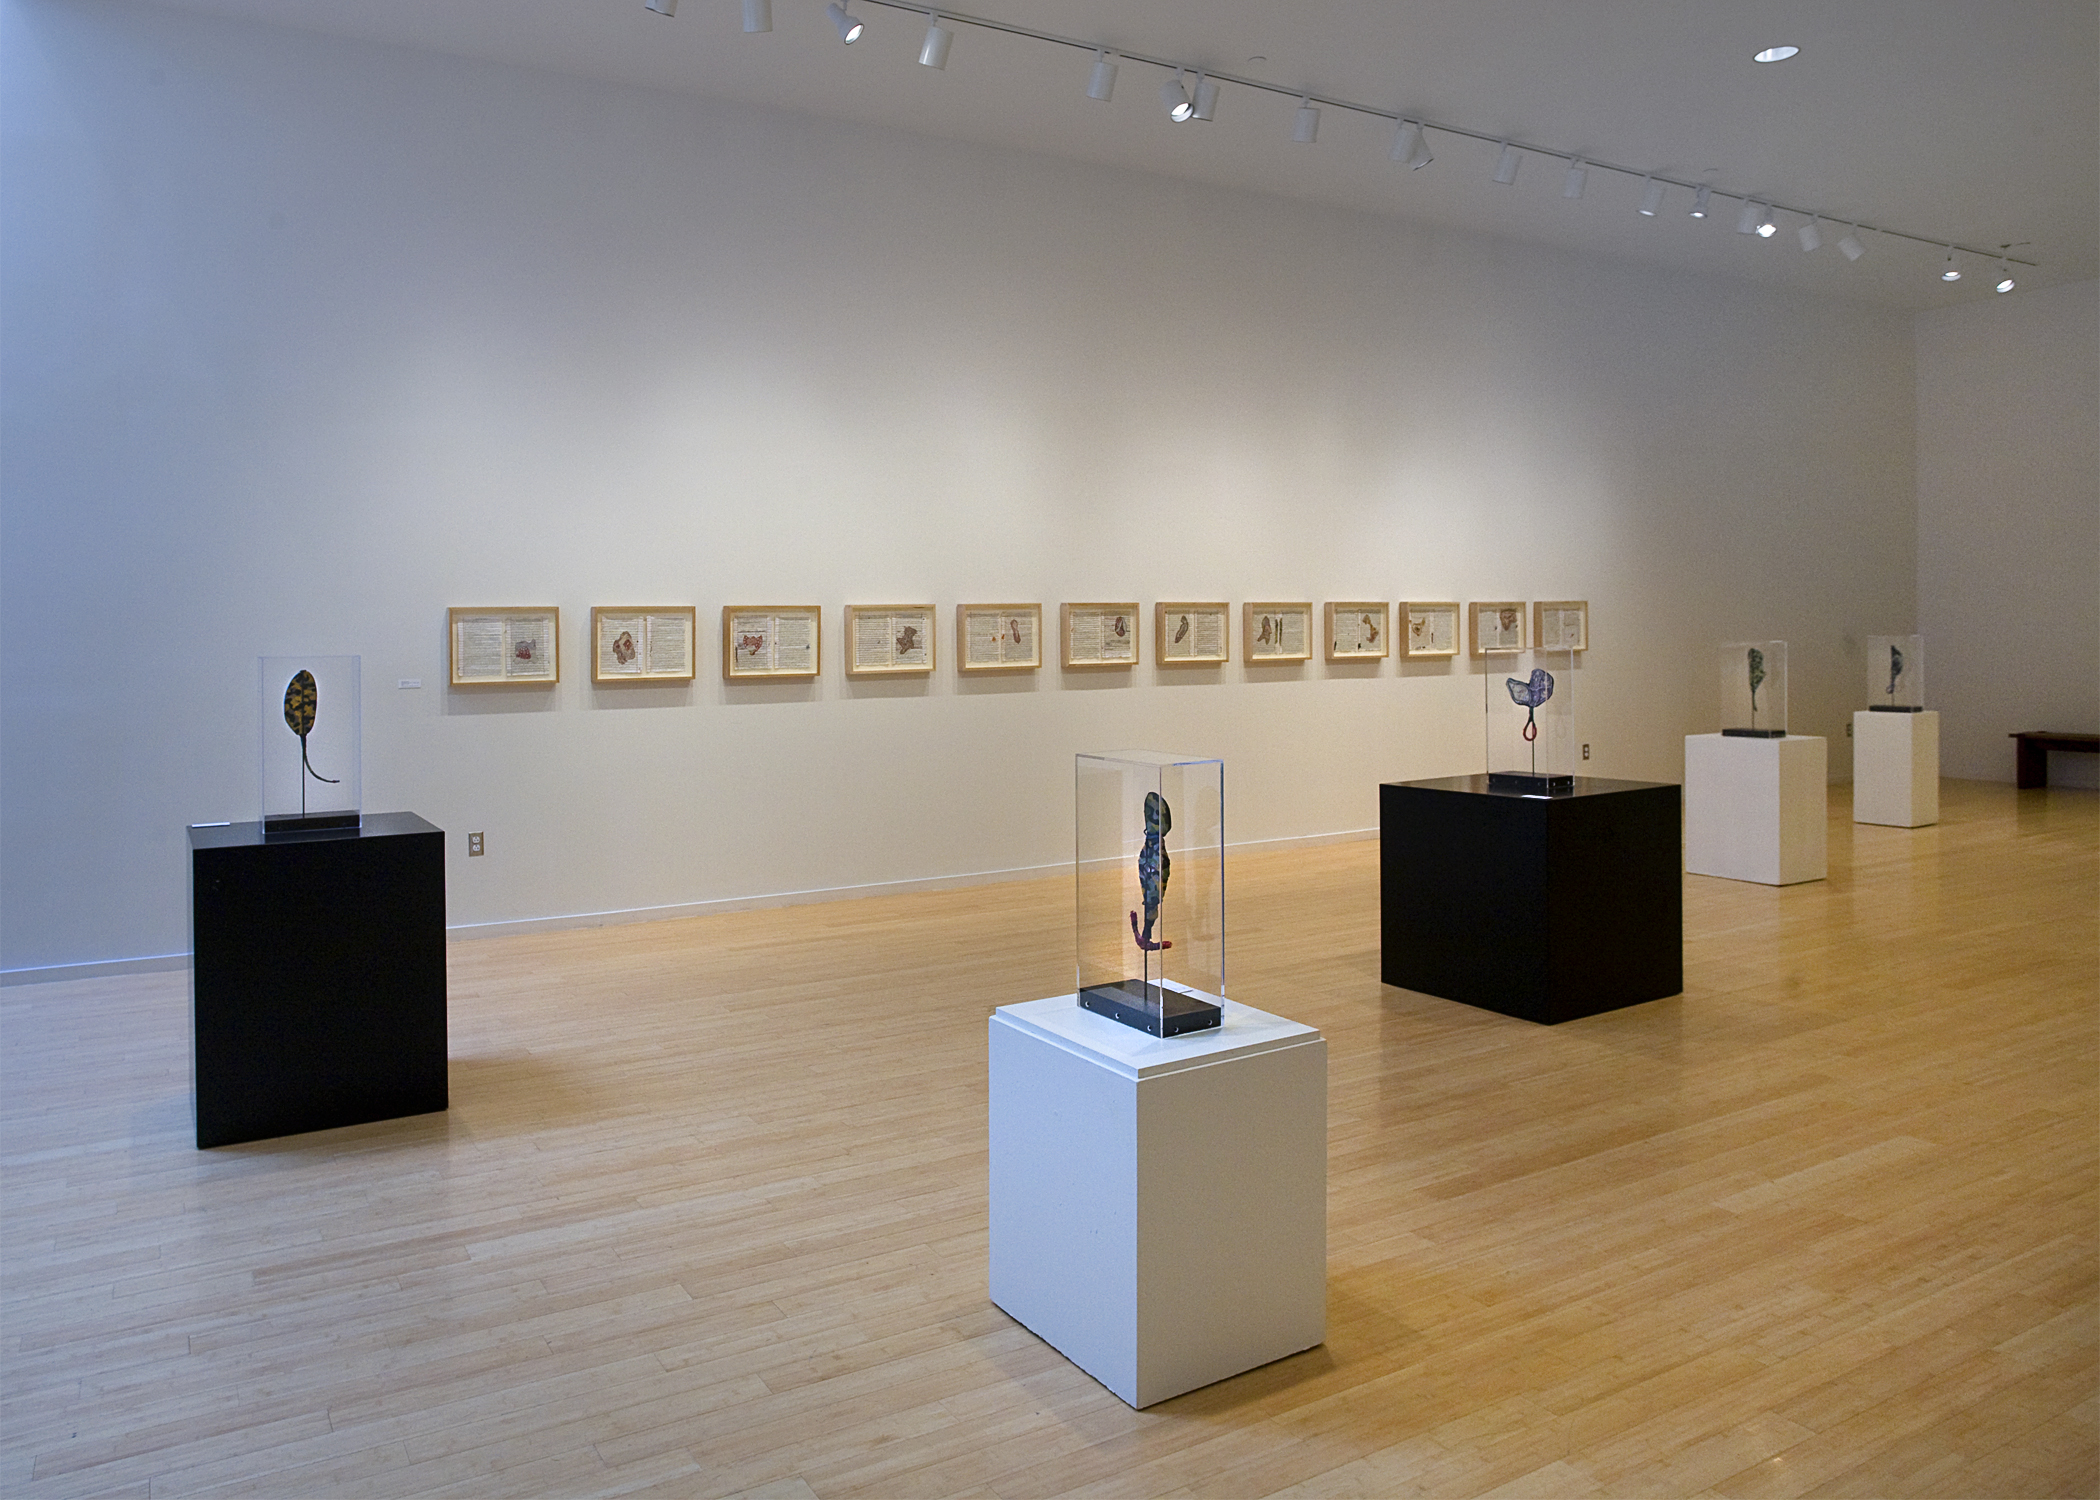 Rhyming The Lines, (installation view) mixed media, 12 framed works, 19 inches by 27 inches each, 2003-2010.